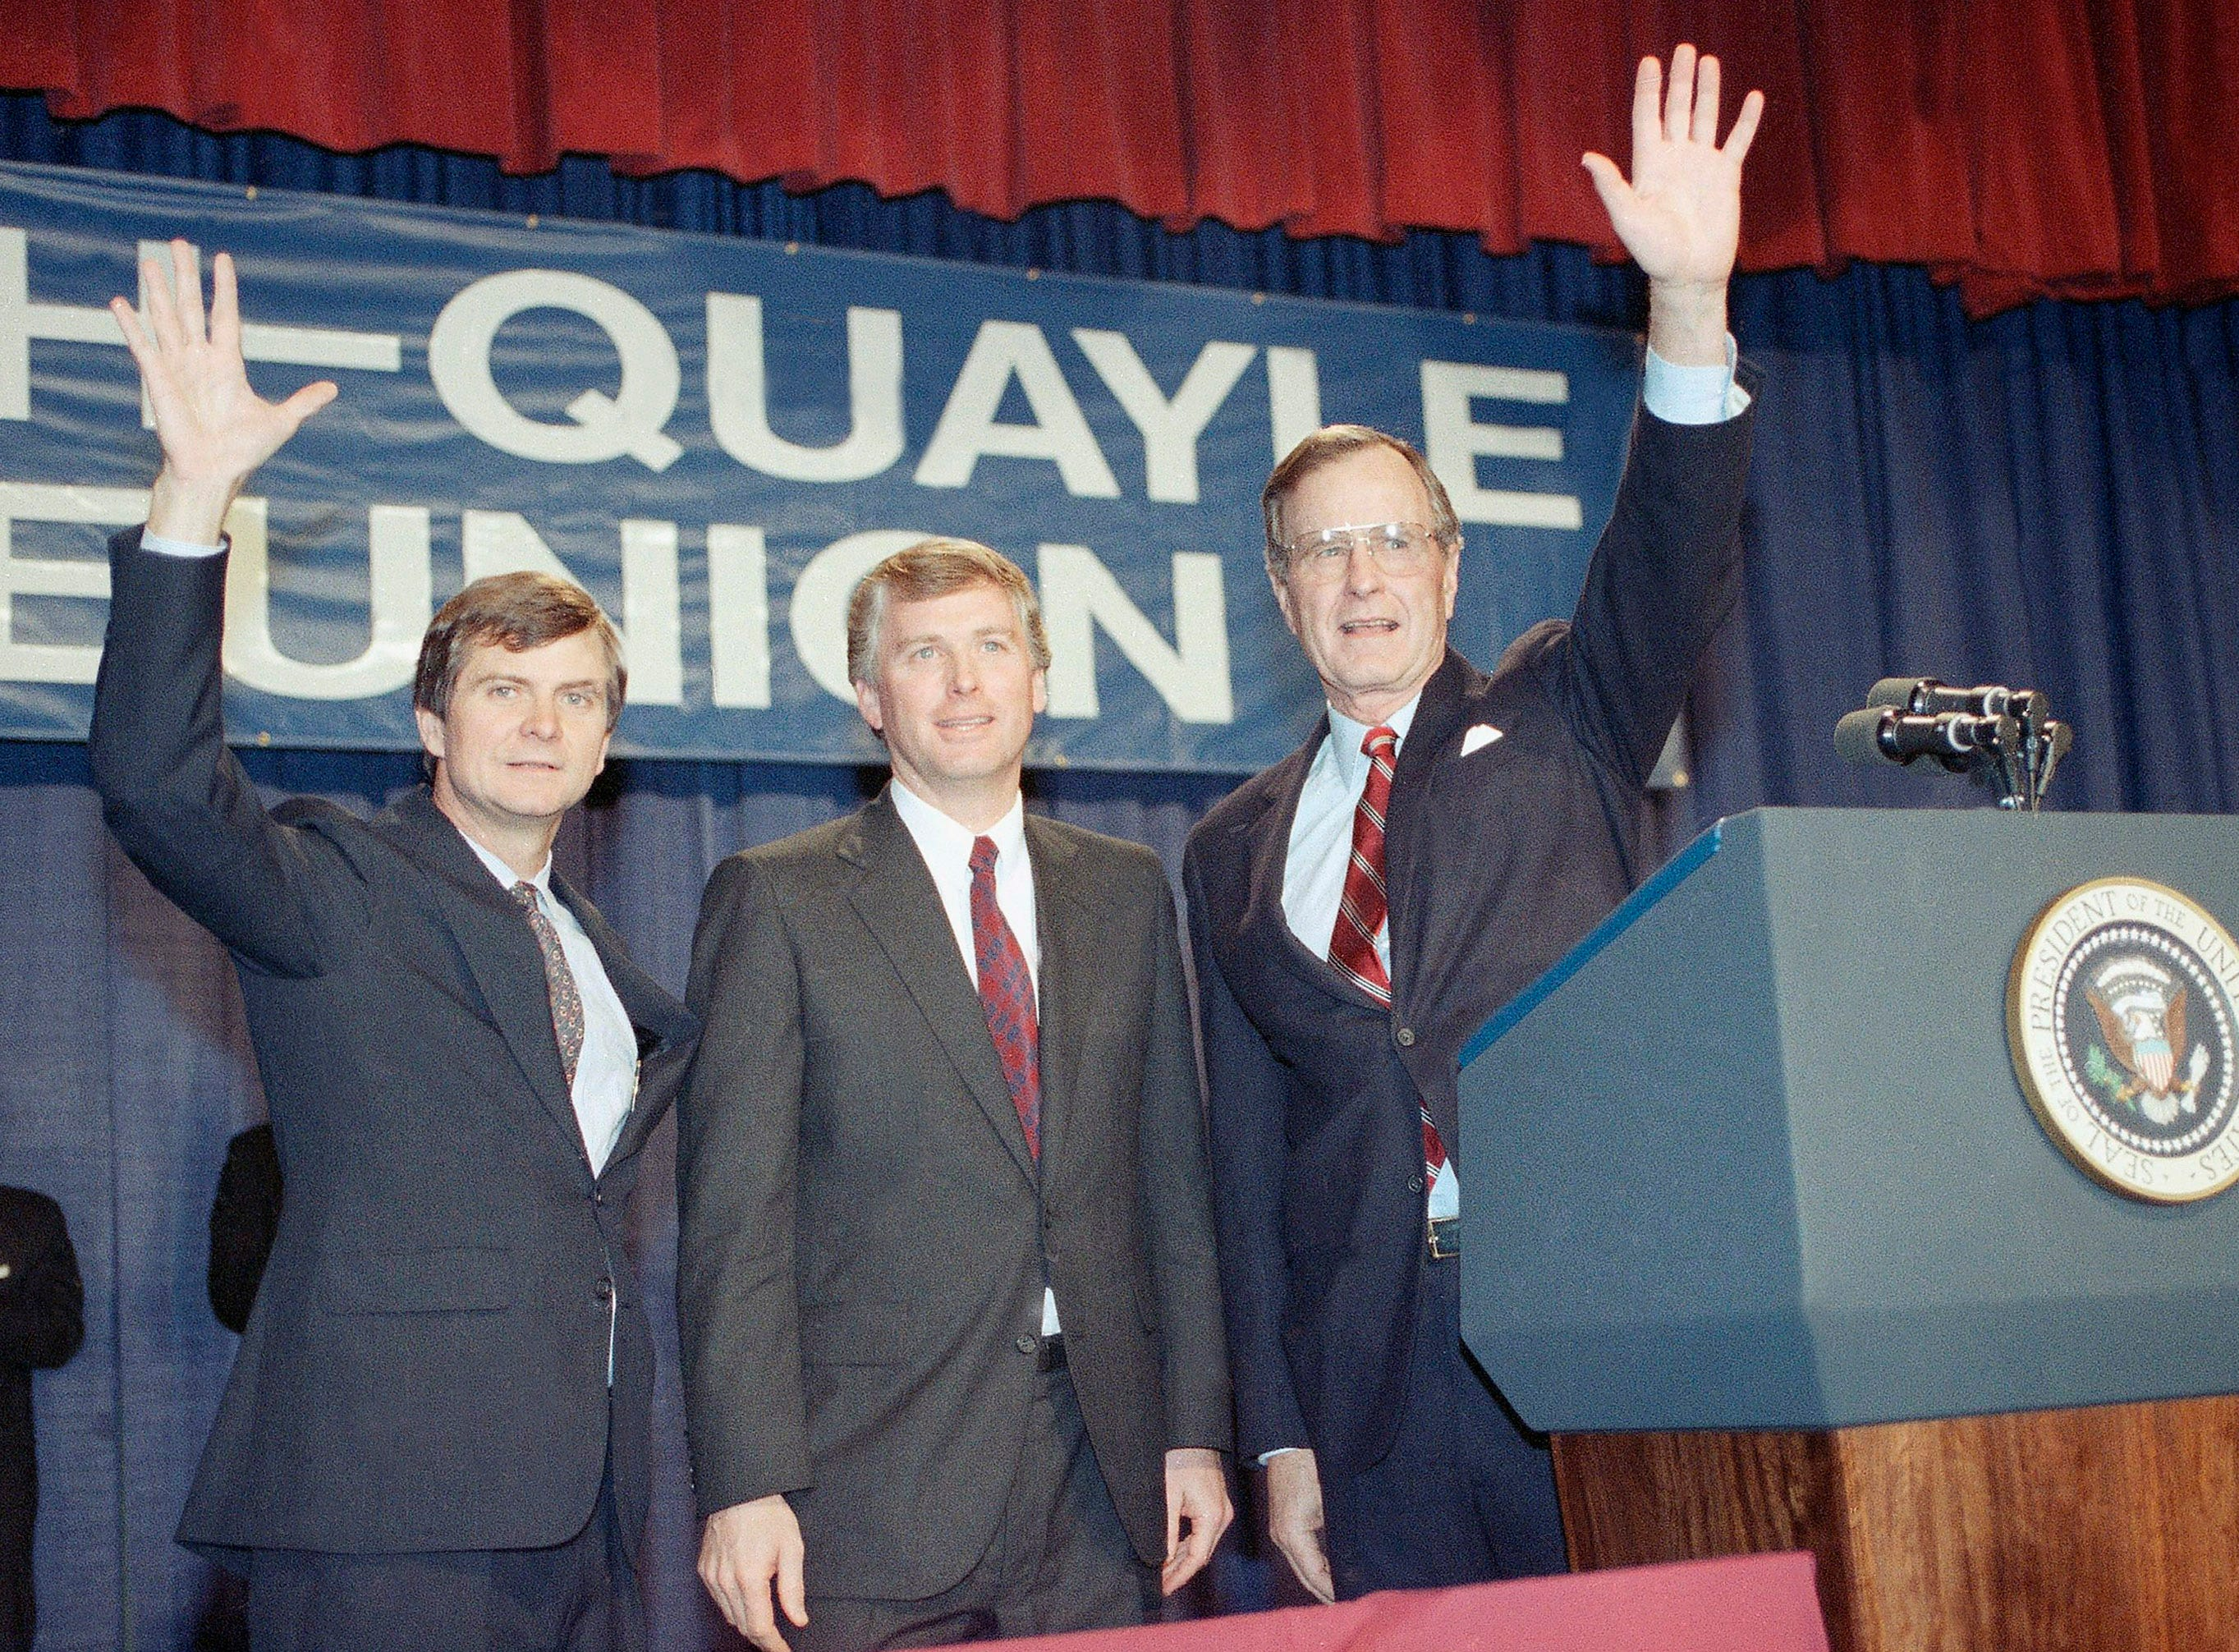 Pres. George H. W. Bush, right, Vice Pres. Dan Quayle, and political consultant Lee Atwater, left, wave to a crowd of campaign workers at a hotel to celebrate the first year of the Bush administration, Thursday, Jan. 18, 1990, Washington, D.C. Bush said All of America has triumphed in his first year in office and again prodded Congress to action his unfinished domestic agenda. (AP Photo/Charles Tasnadi)